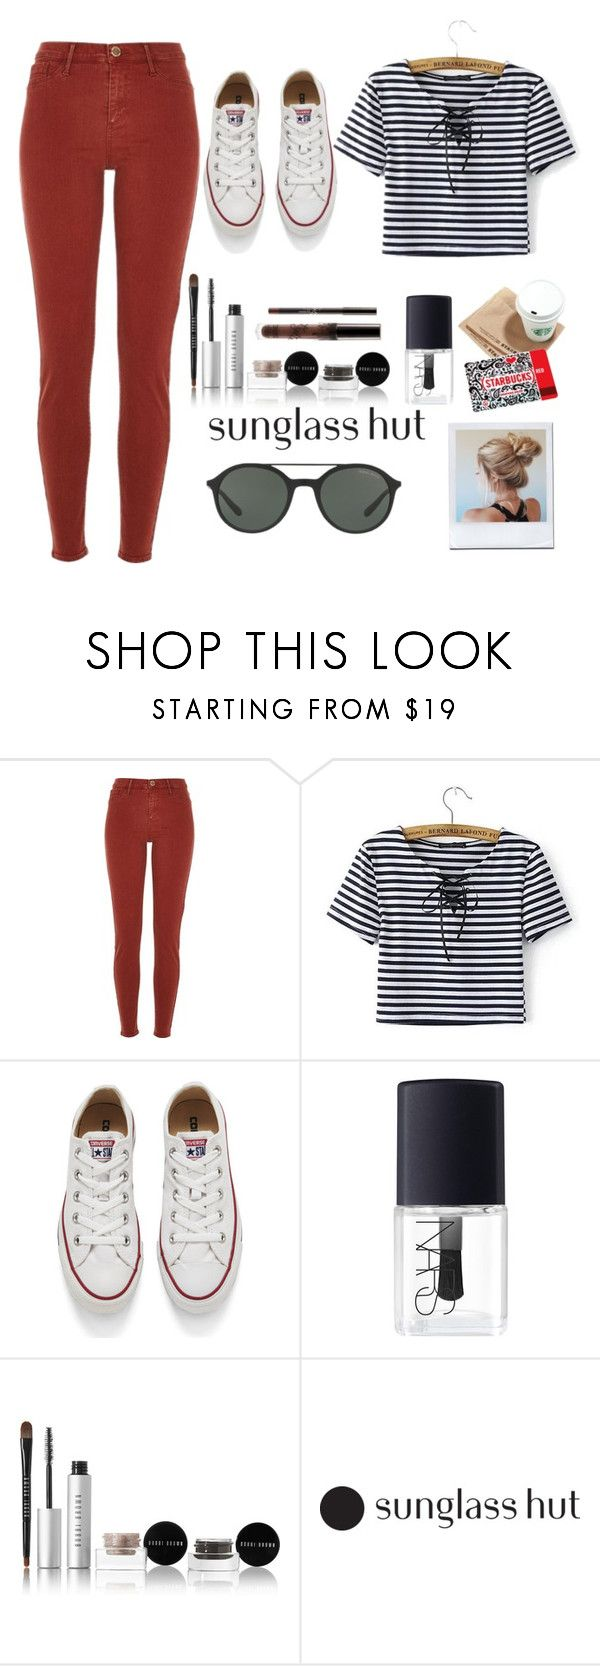 """Shades of You: Sunglass Hut Contest Entry"" by isabellysantanaa ❤ liked on Polyvore featuring River Island, Converse, NARS Cosmetics, Bobbi Brown Cosmetics, Guide London, Giorgio Armani and shadesofyou"